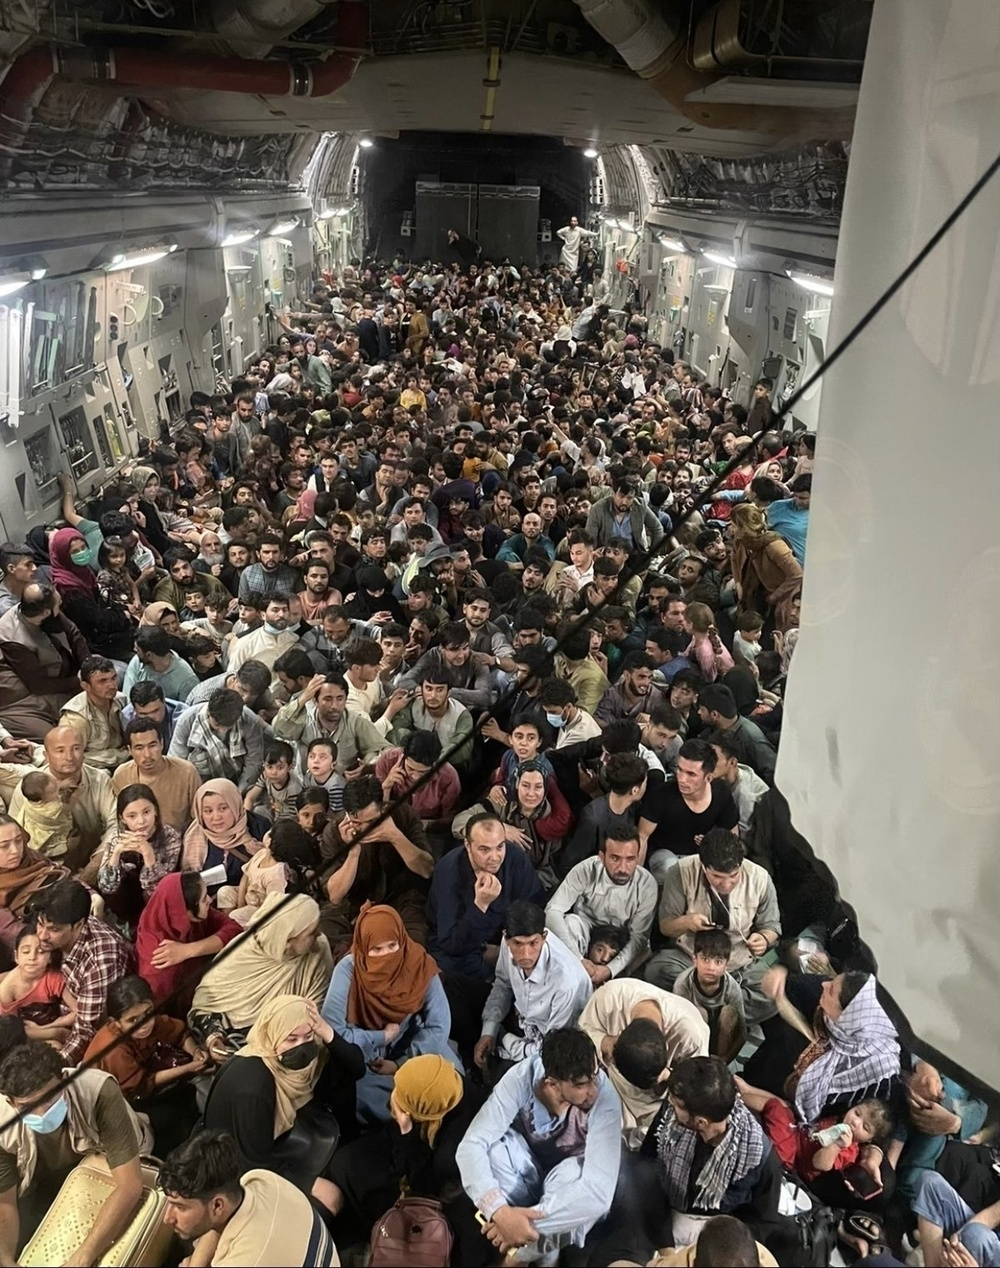 C-17 carrying passengers out of Afghanistan